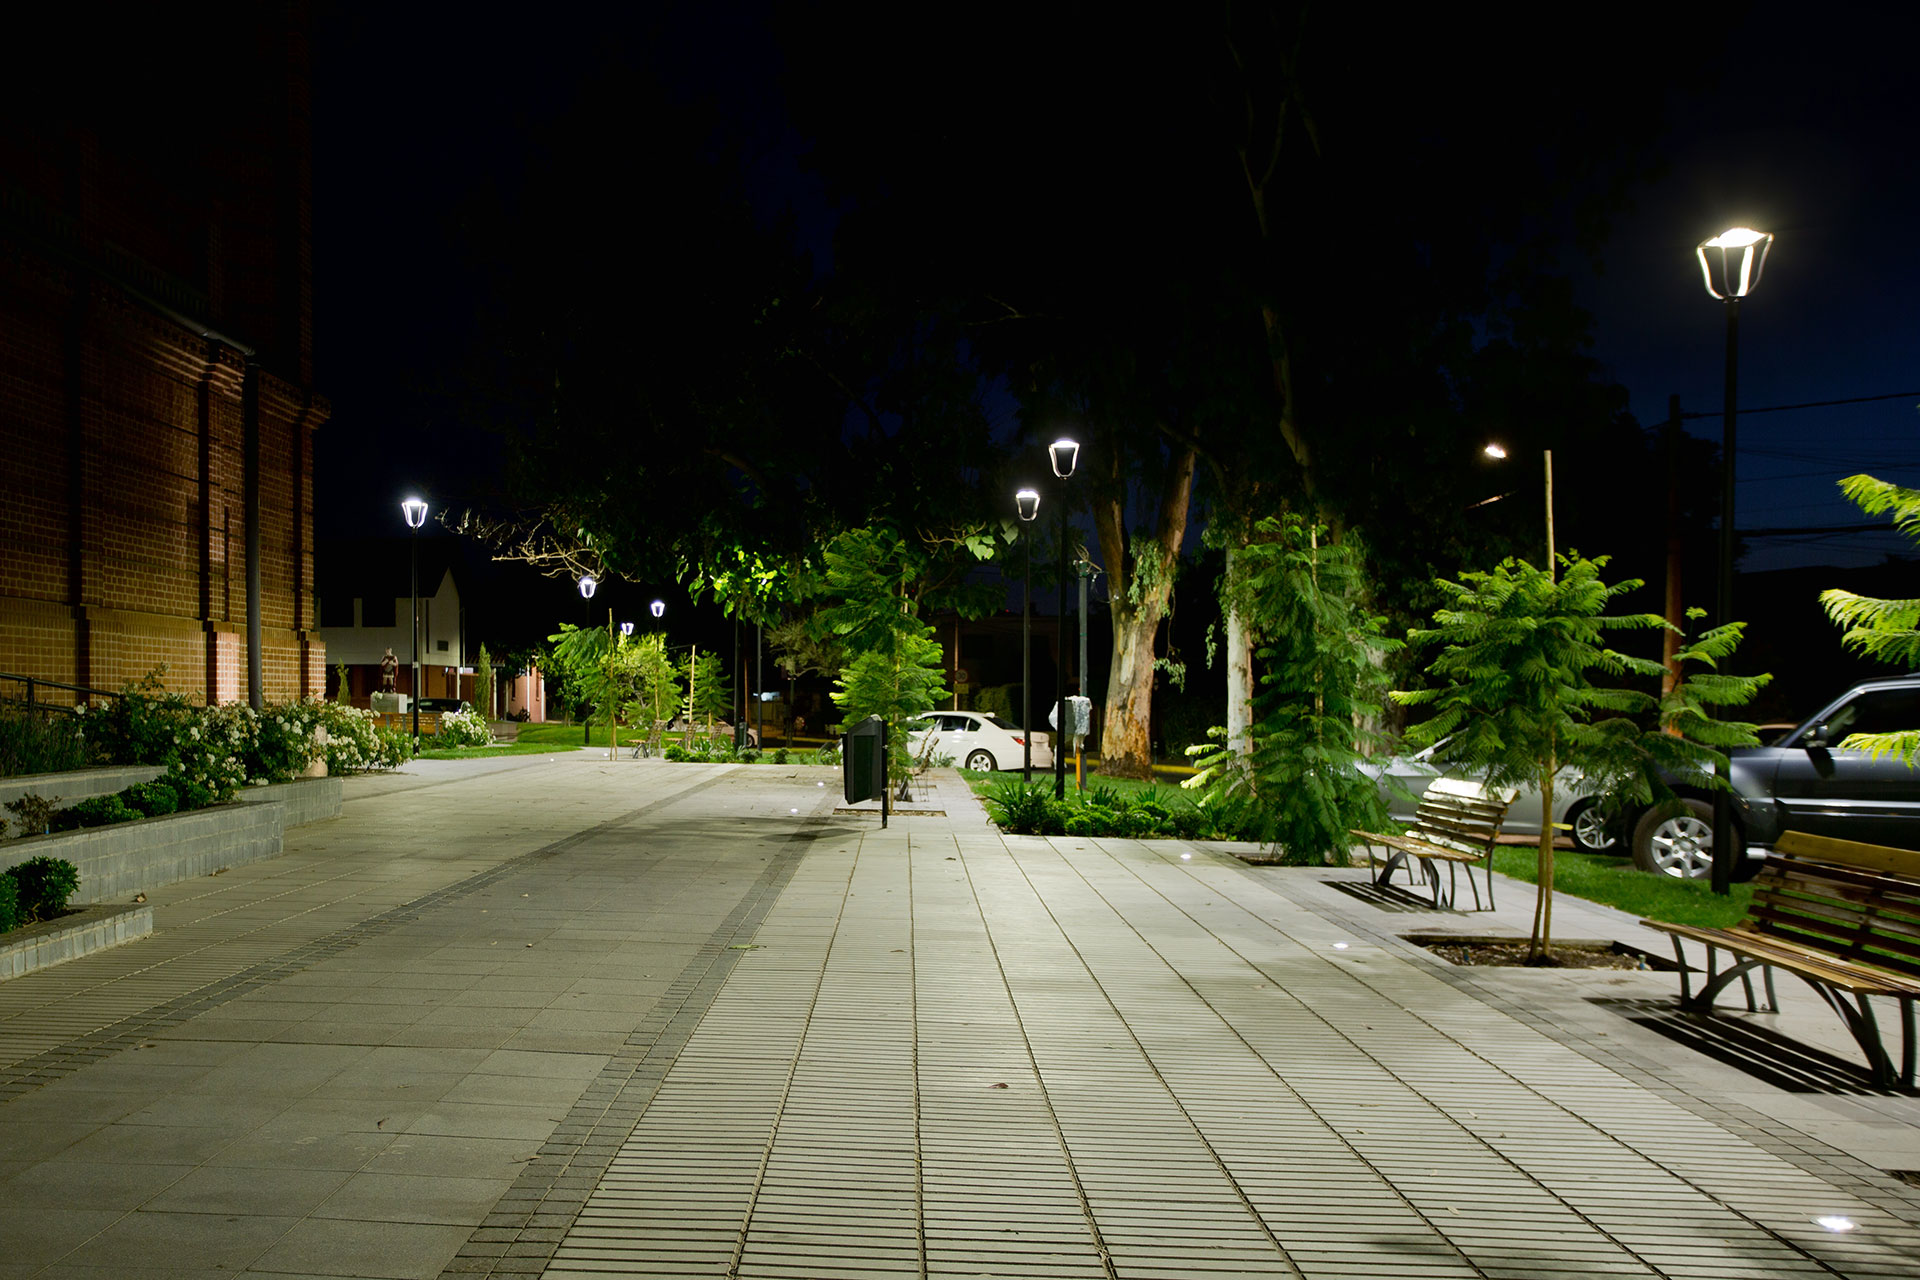 Smart lighting solution creates vibrant nocturnal landscapes for residents of Vitacura